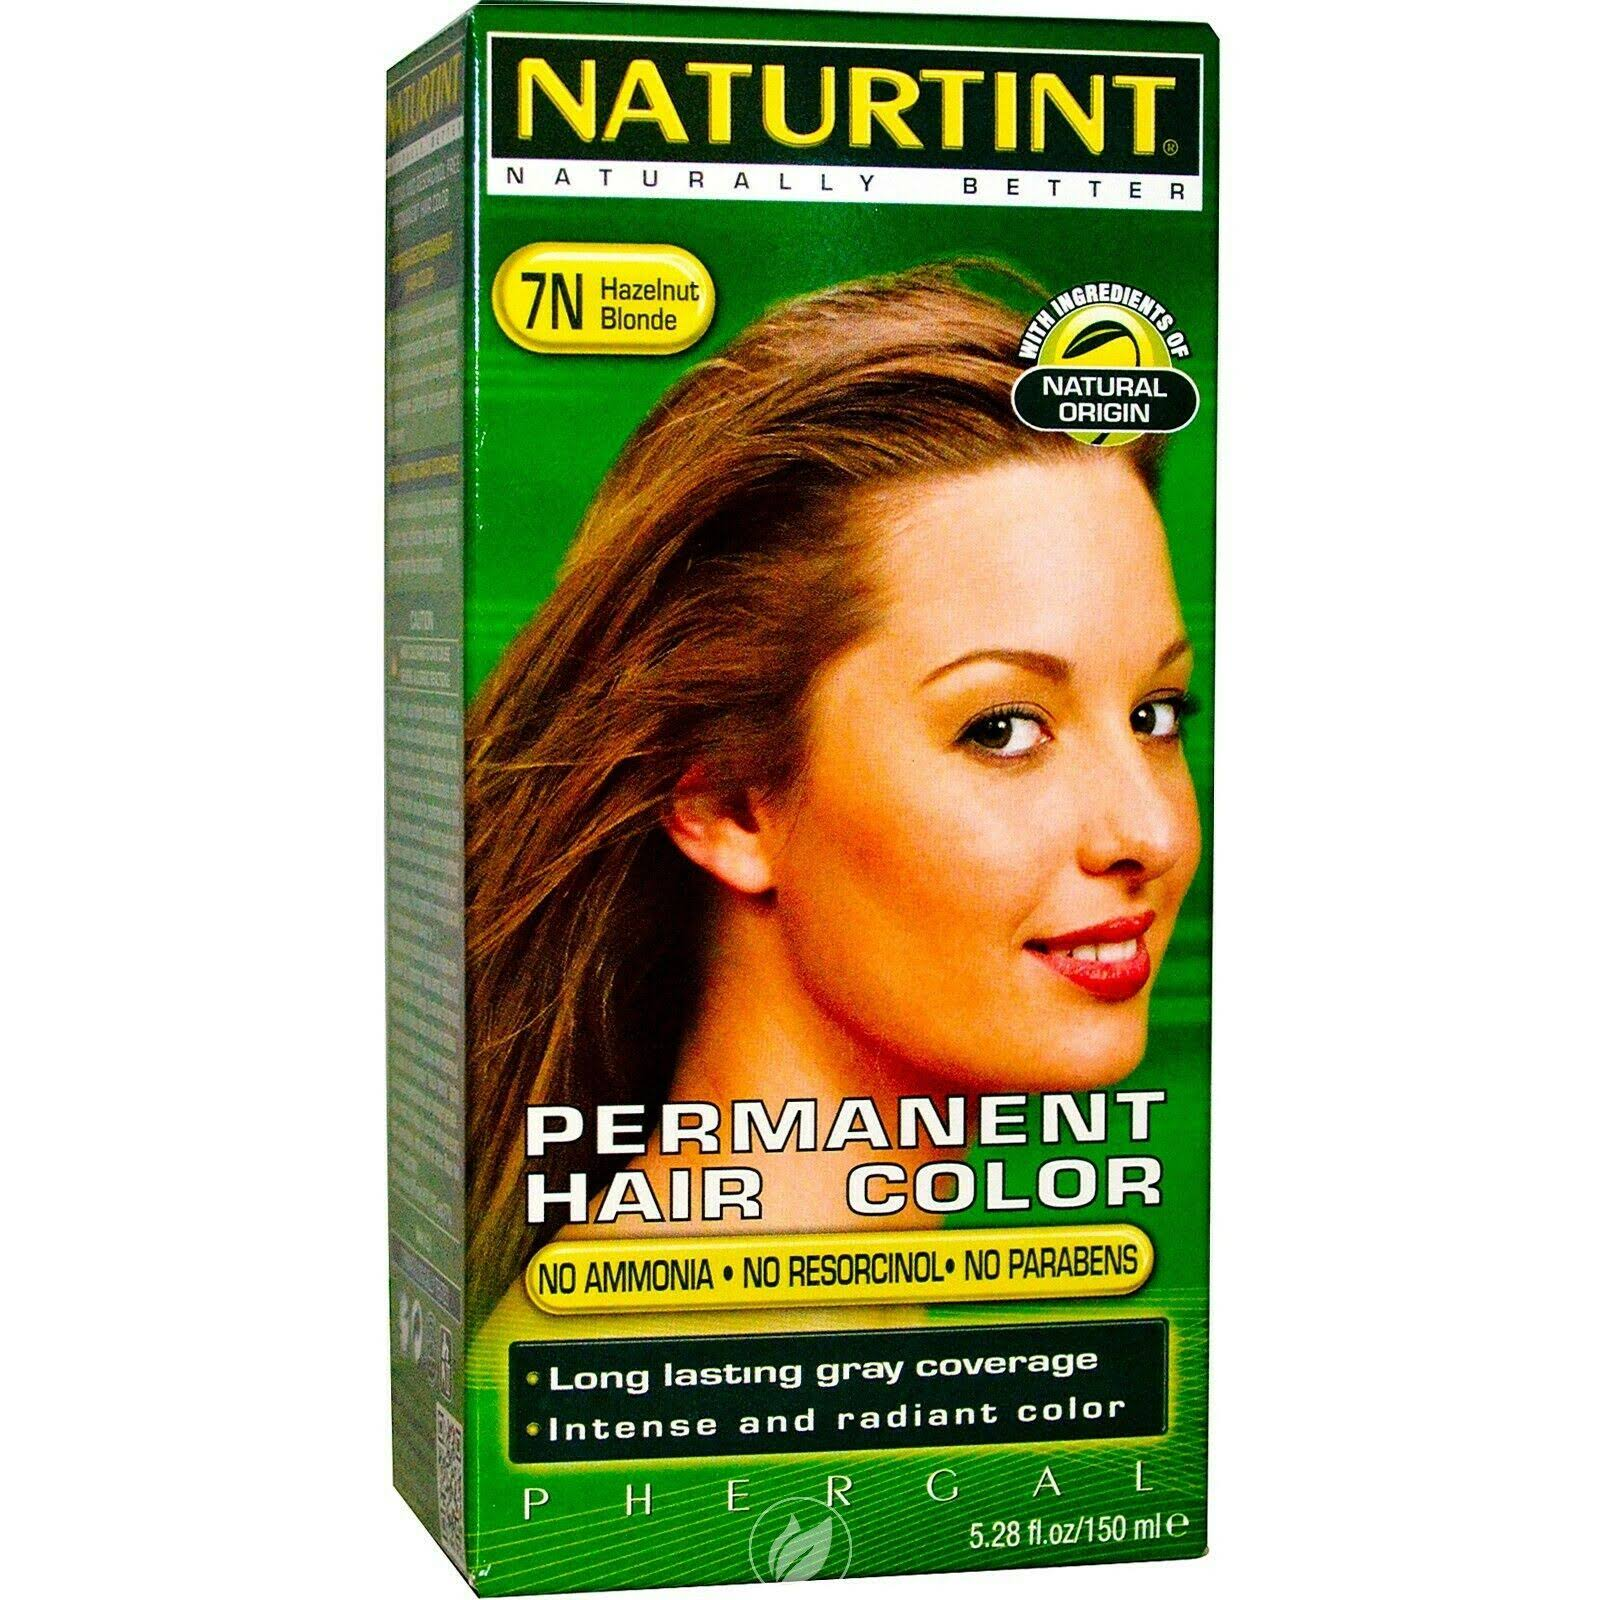 Naturtint Permanent Hair Colorant - Hazelnut Blonde 7N